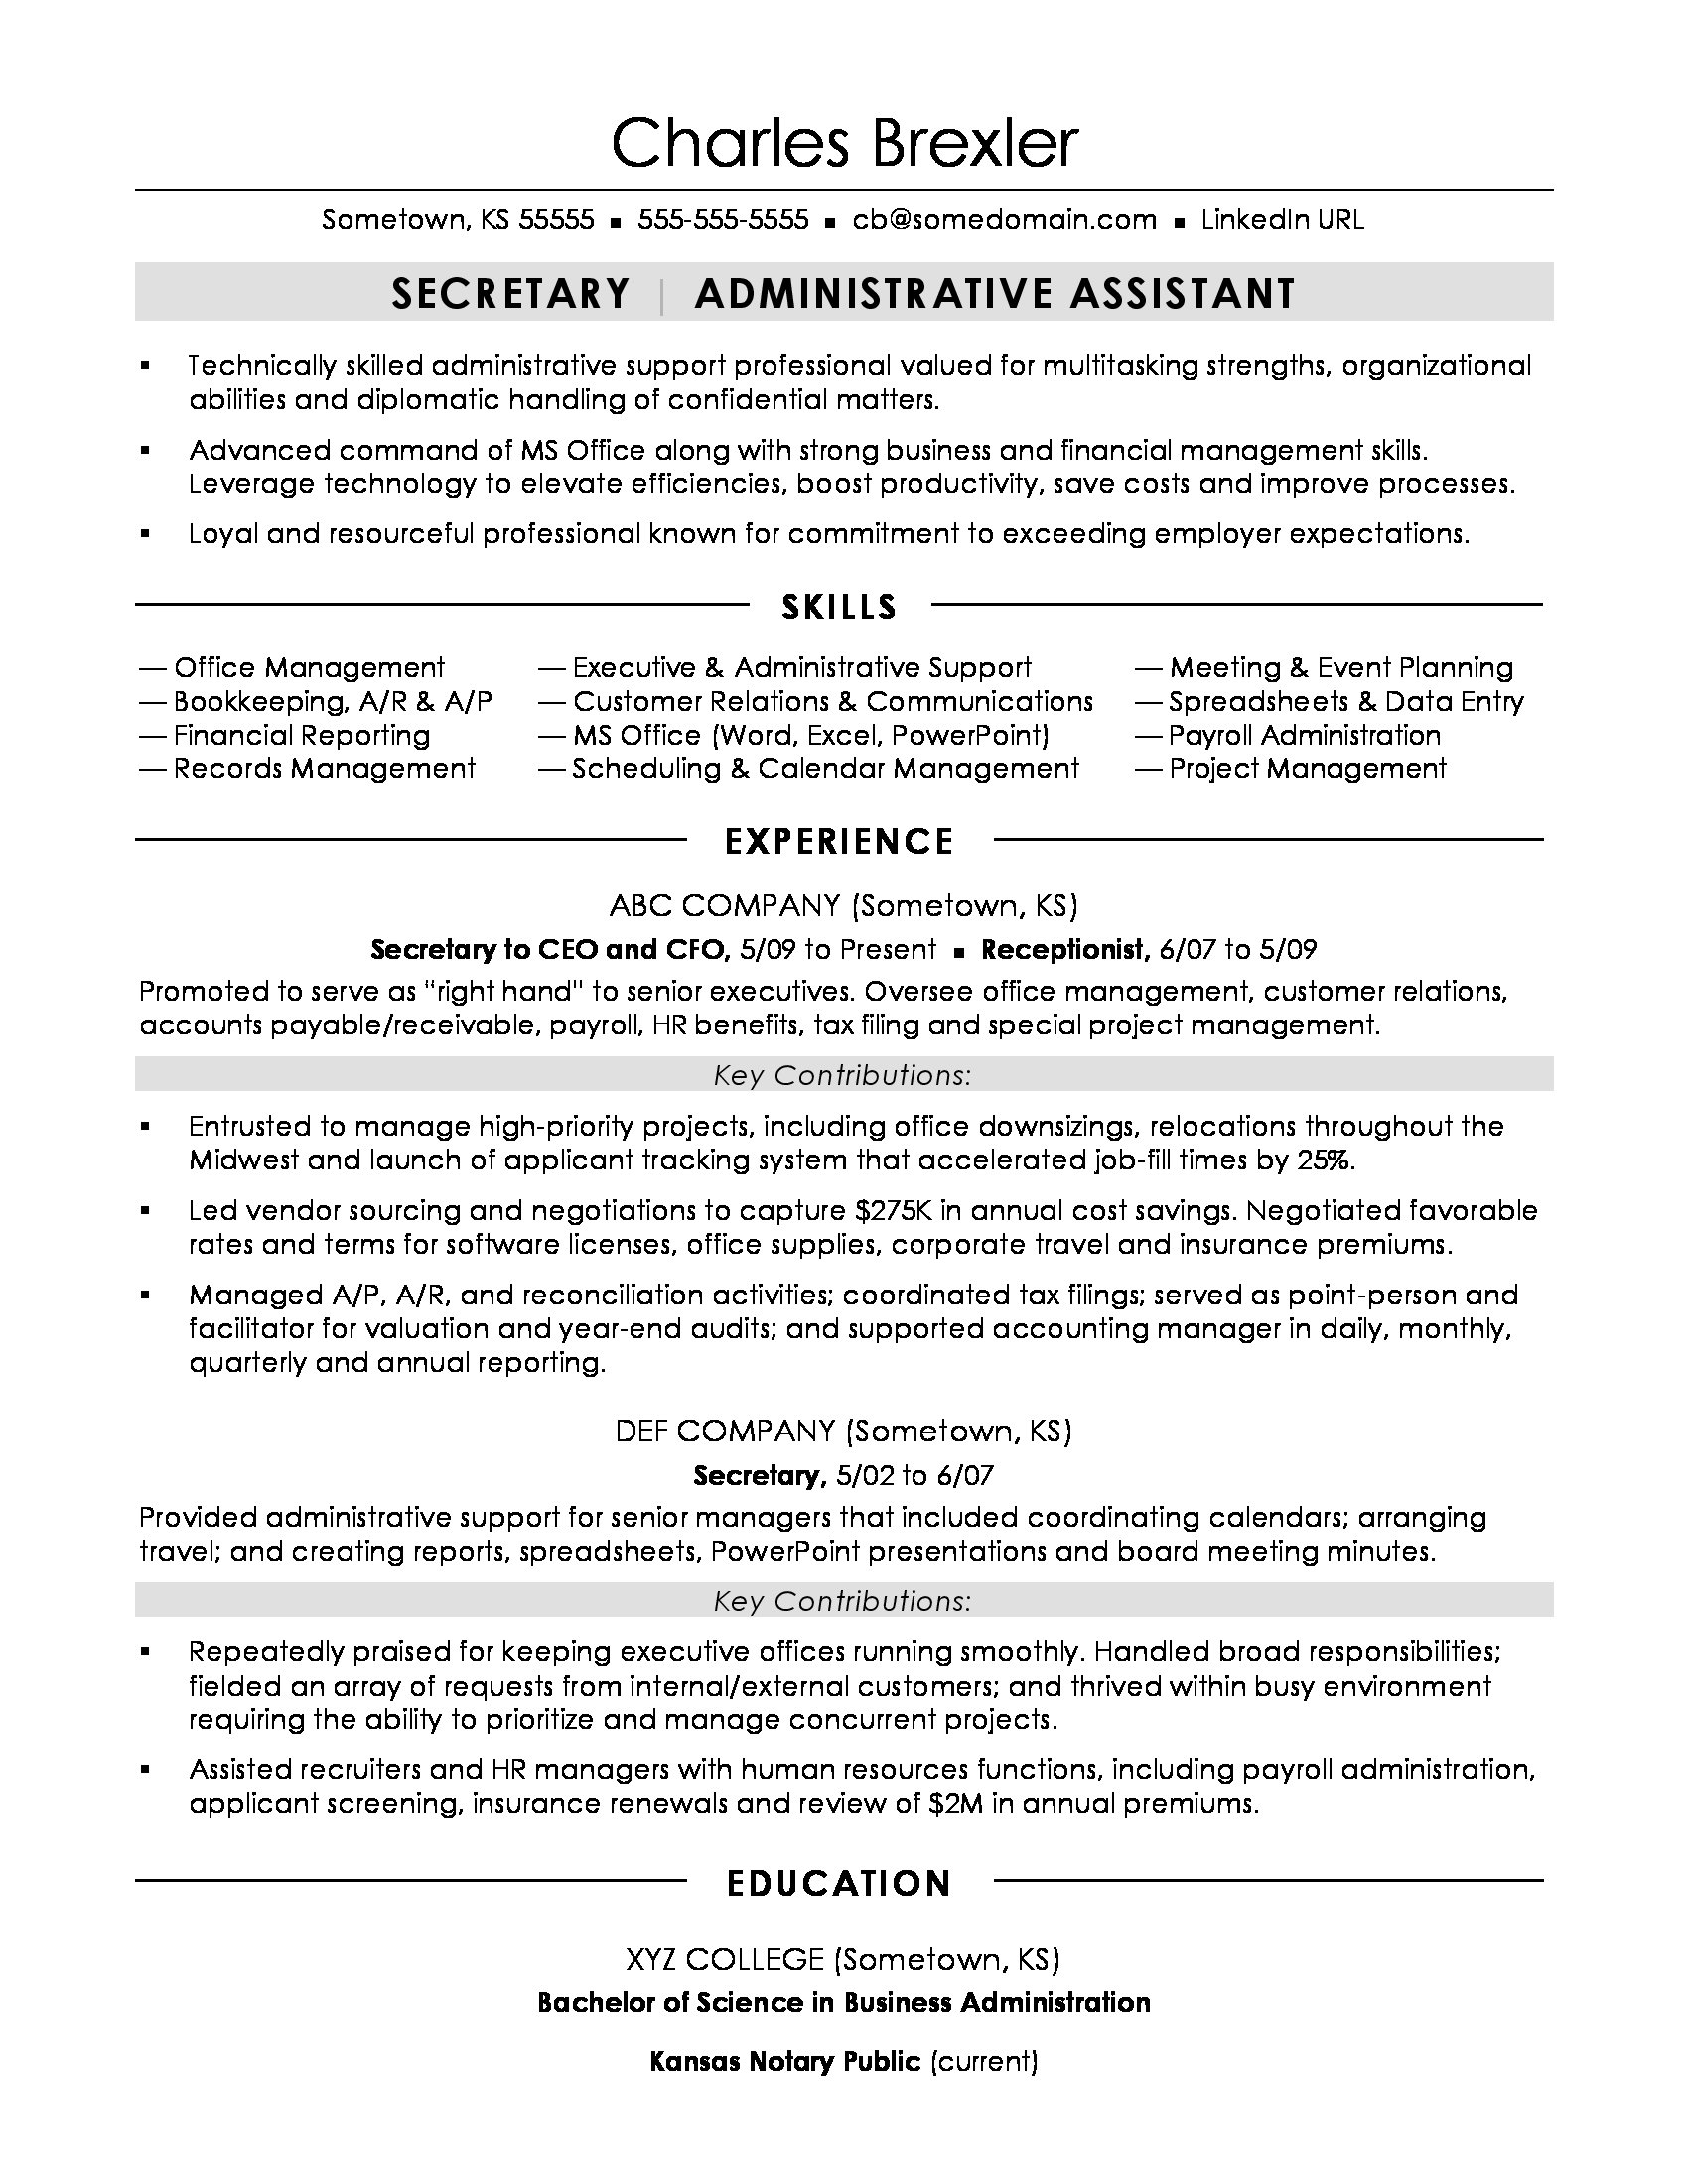 secretary resume sample - Resume Sample For Secretary Job